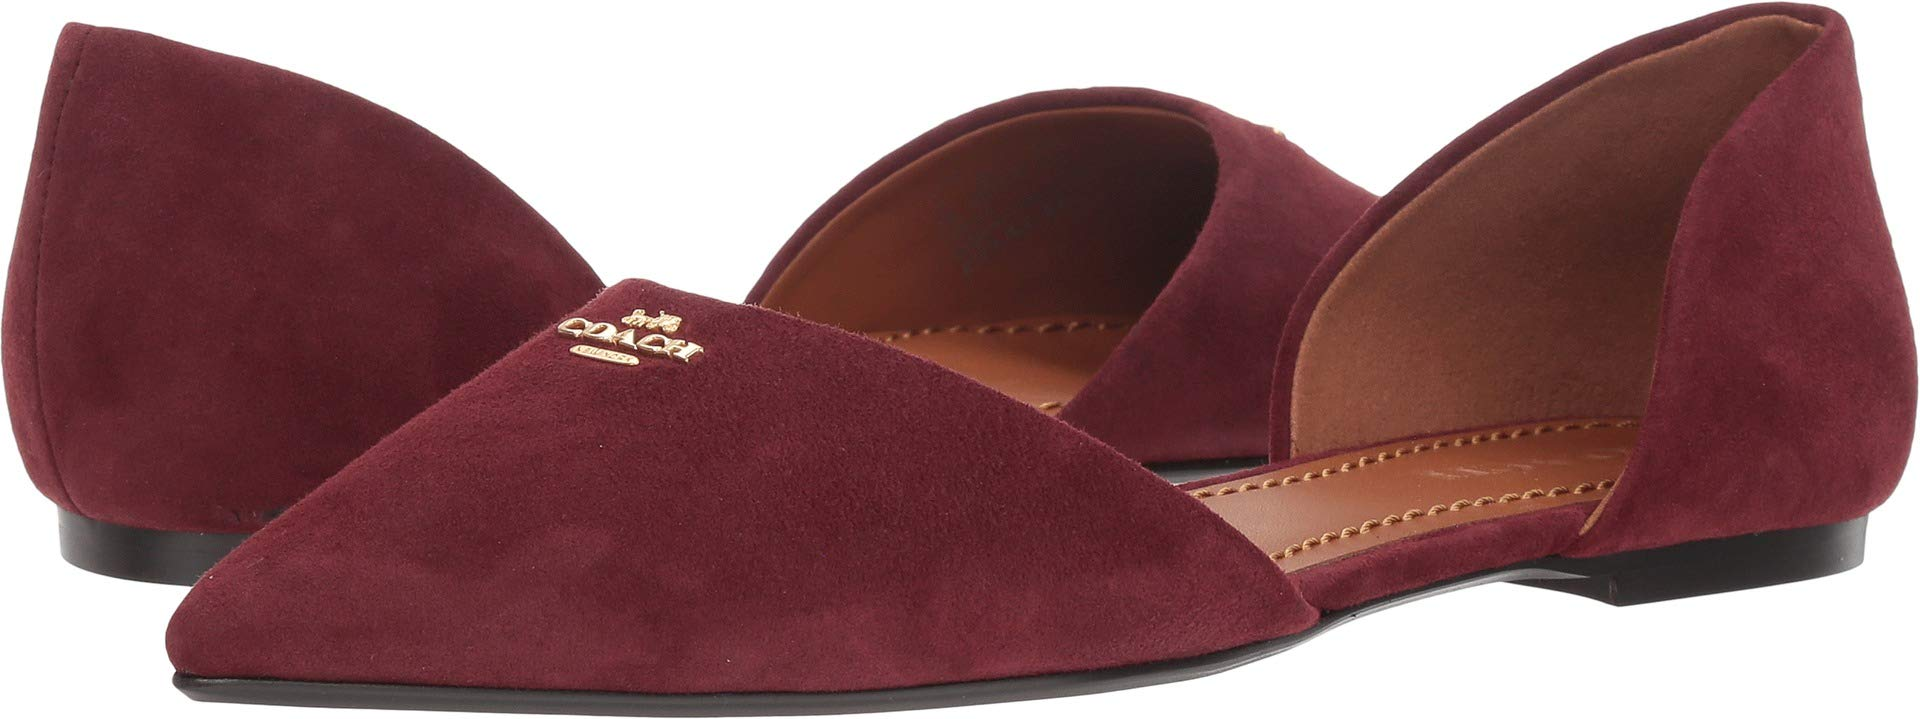 Coach Womens Suede Pointy Toe Flat